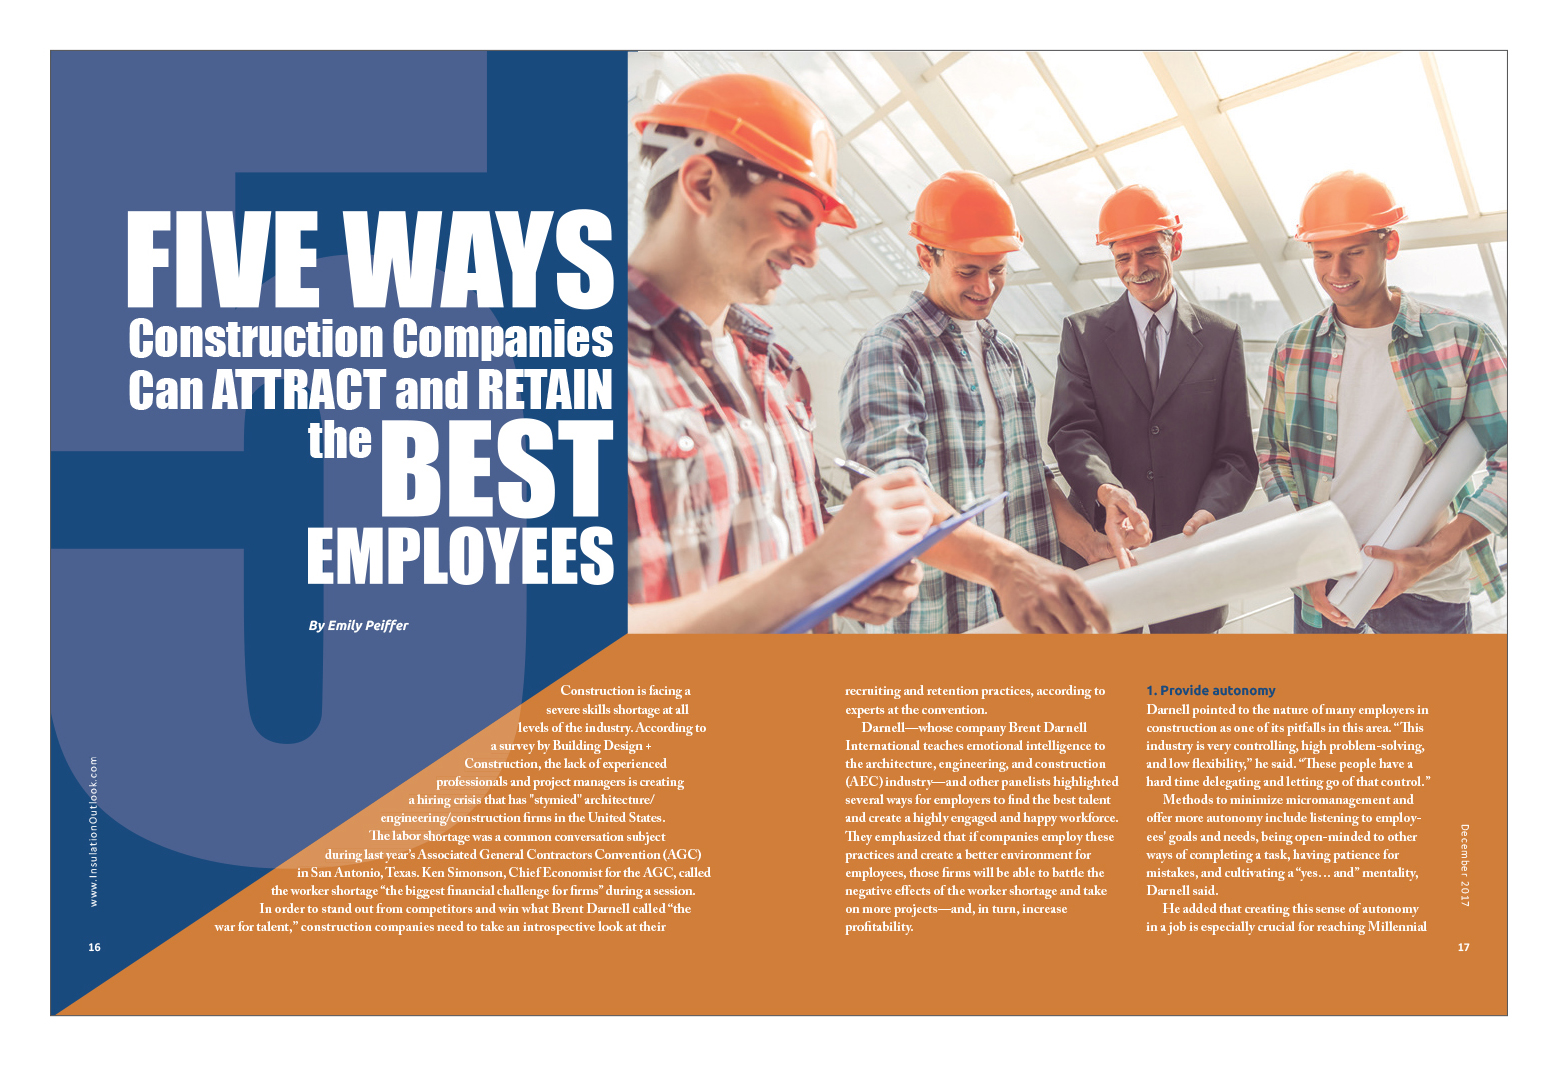 Five Ways Construction Companies Can Attract and Retain the